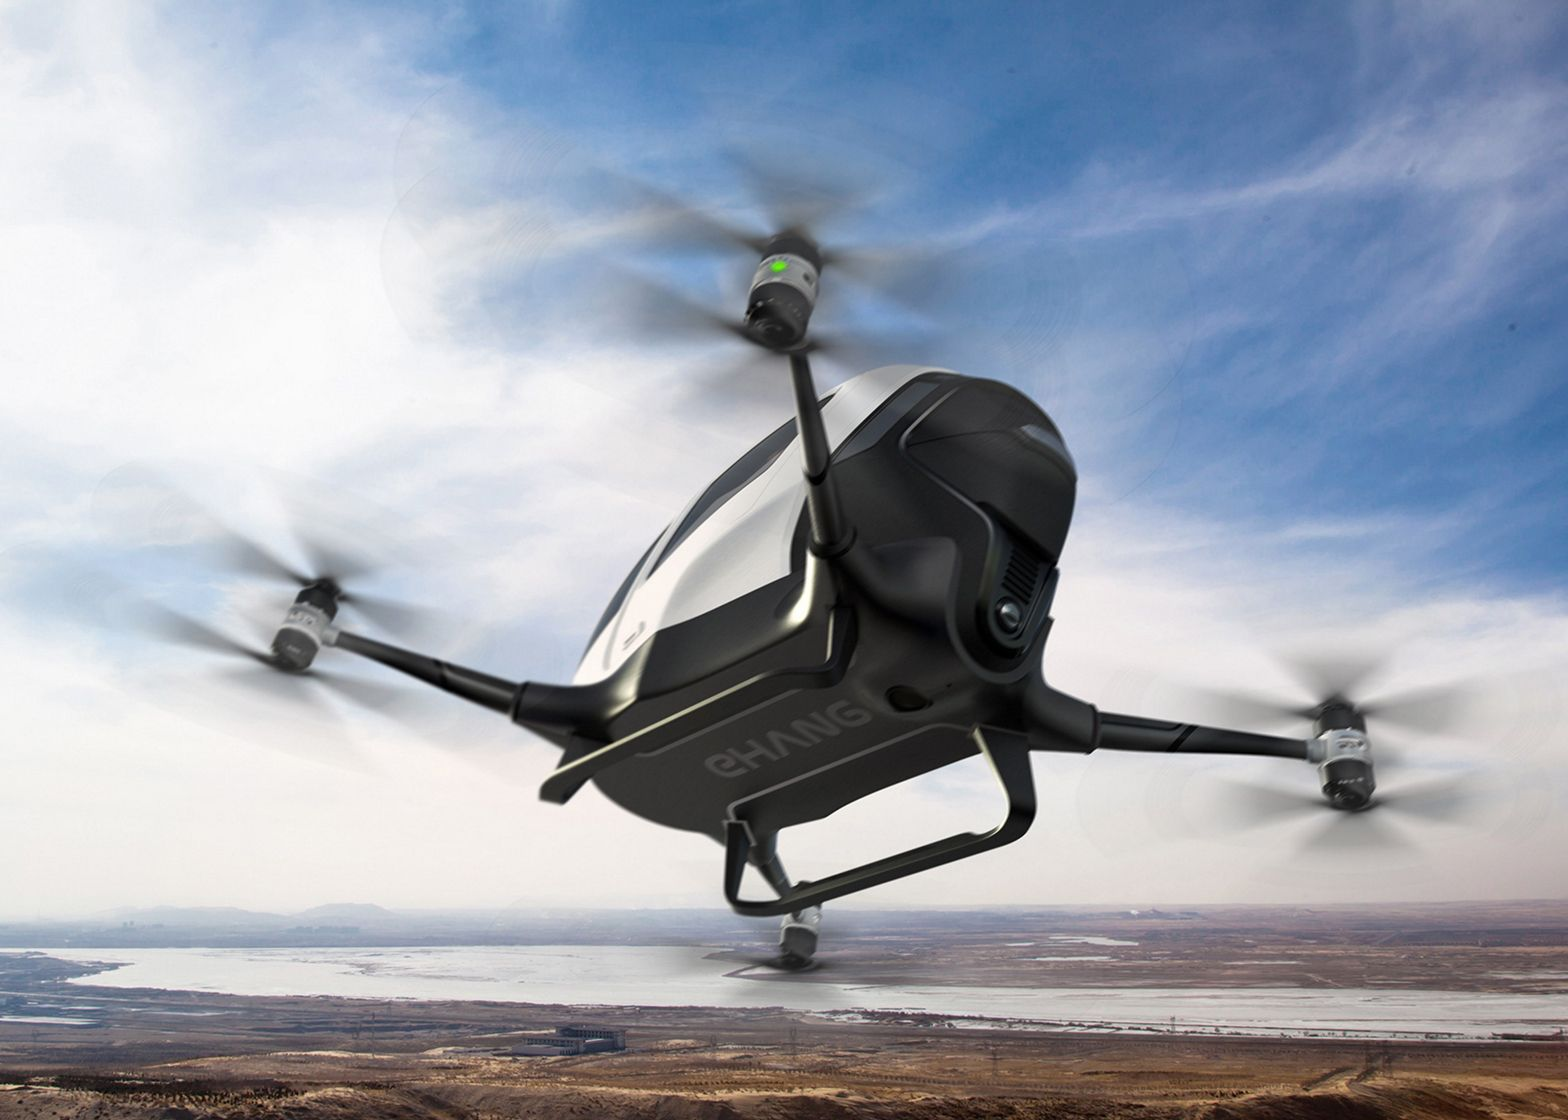 A passengercarrying drone that will transport individuals